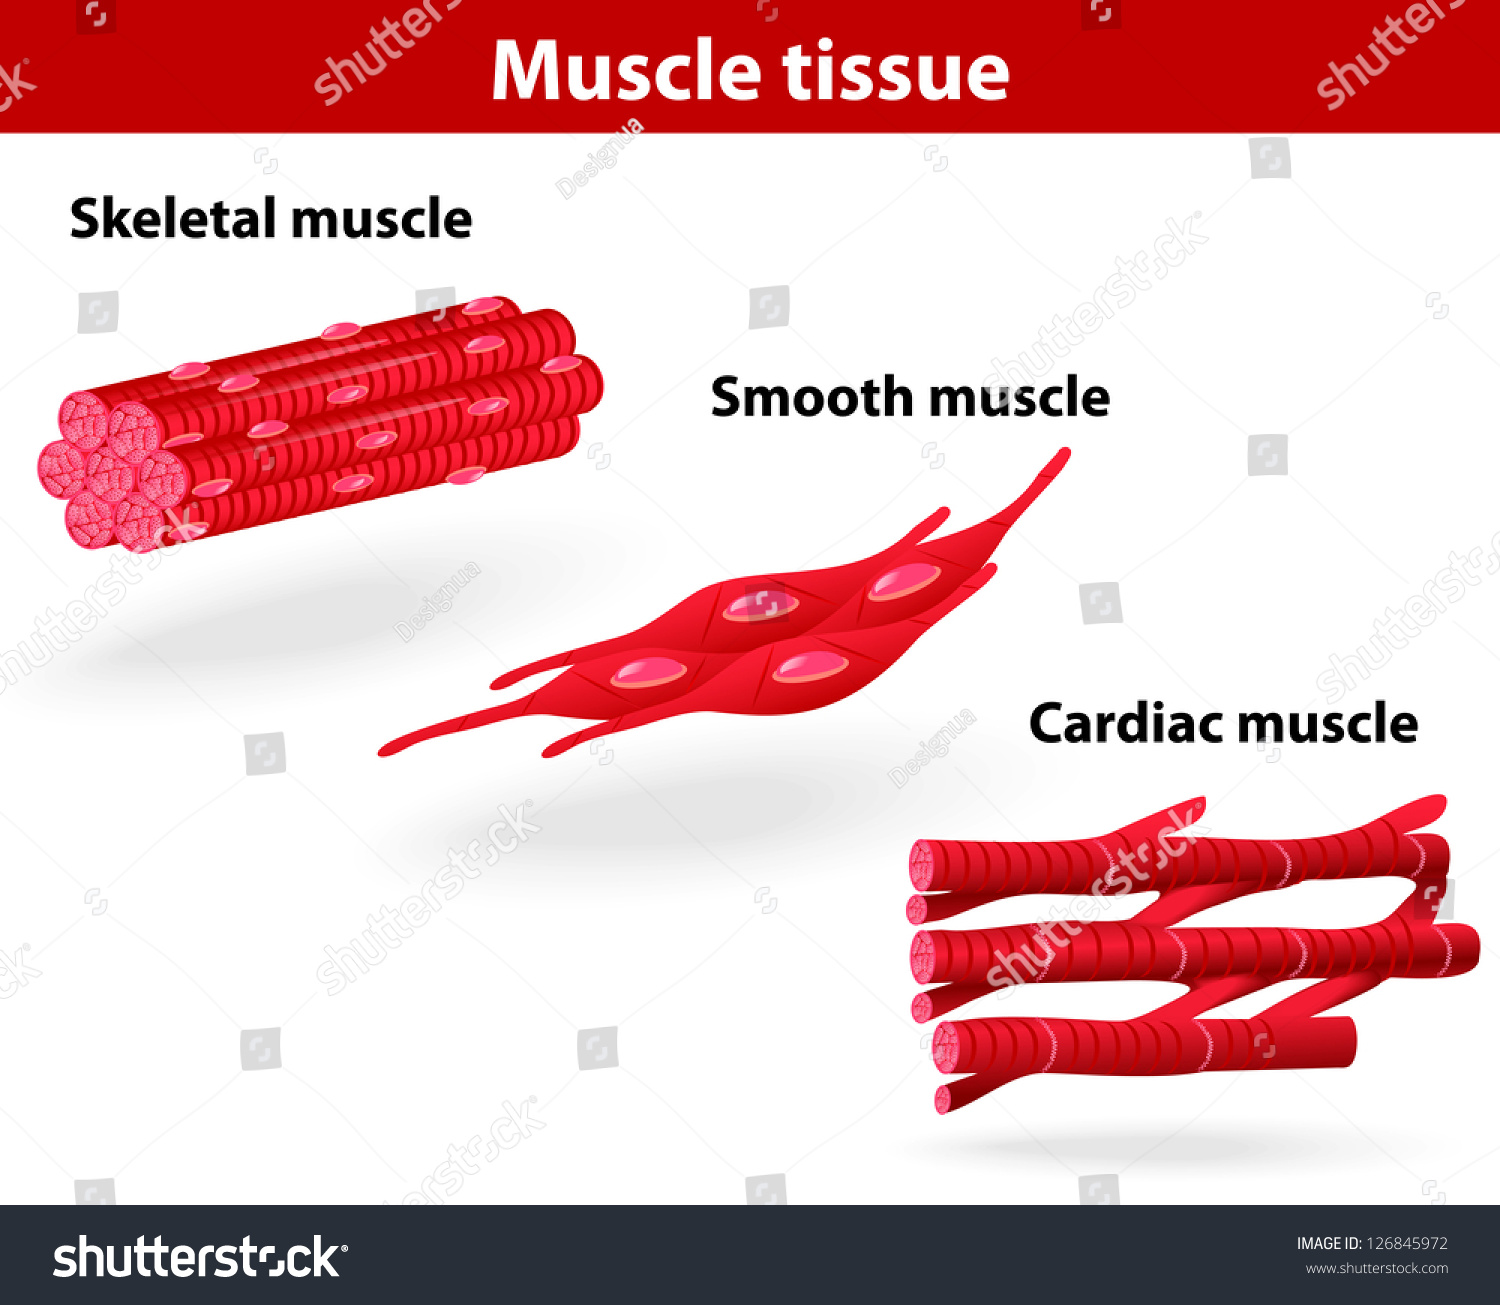 cardiac muscle tissue diagram labeled yamaha g2 gas wiring types skeletal smooth stock vector